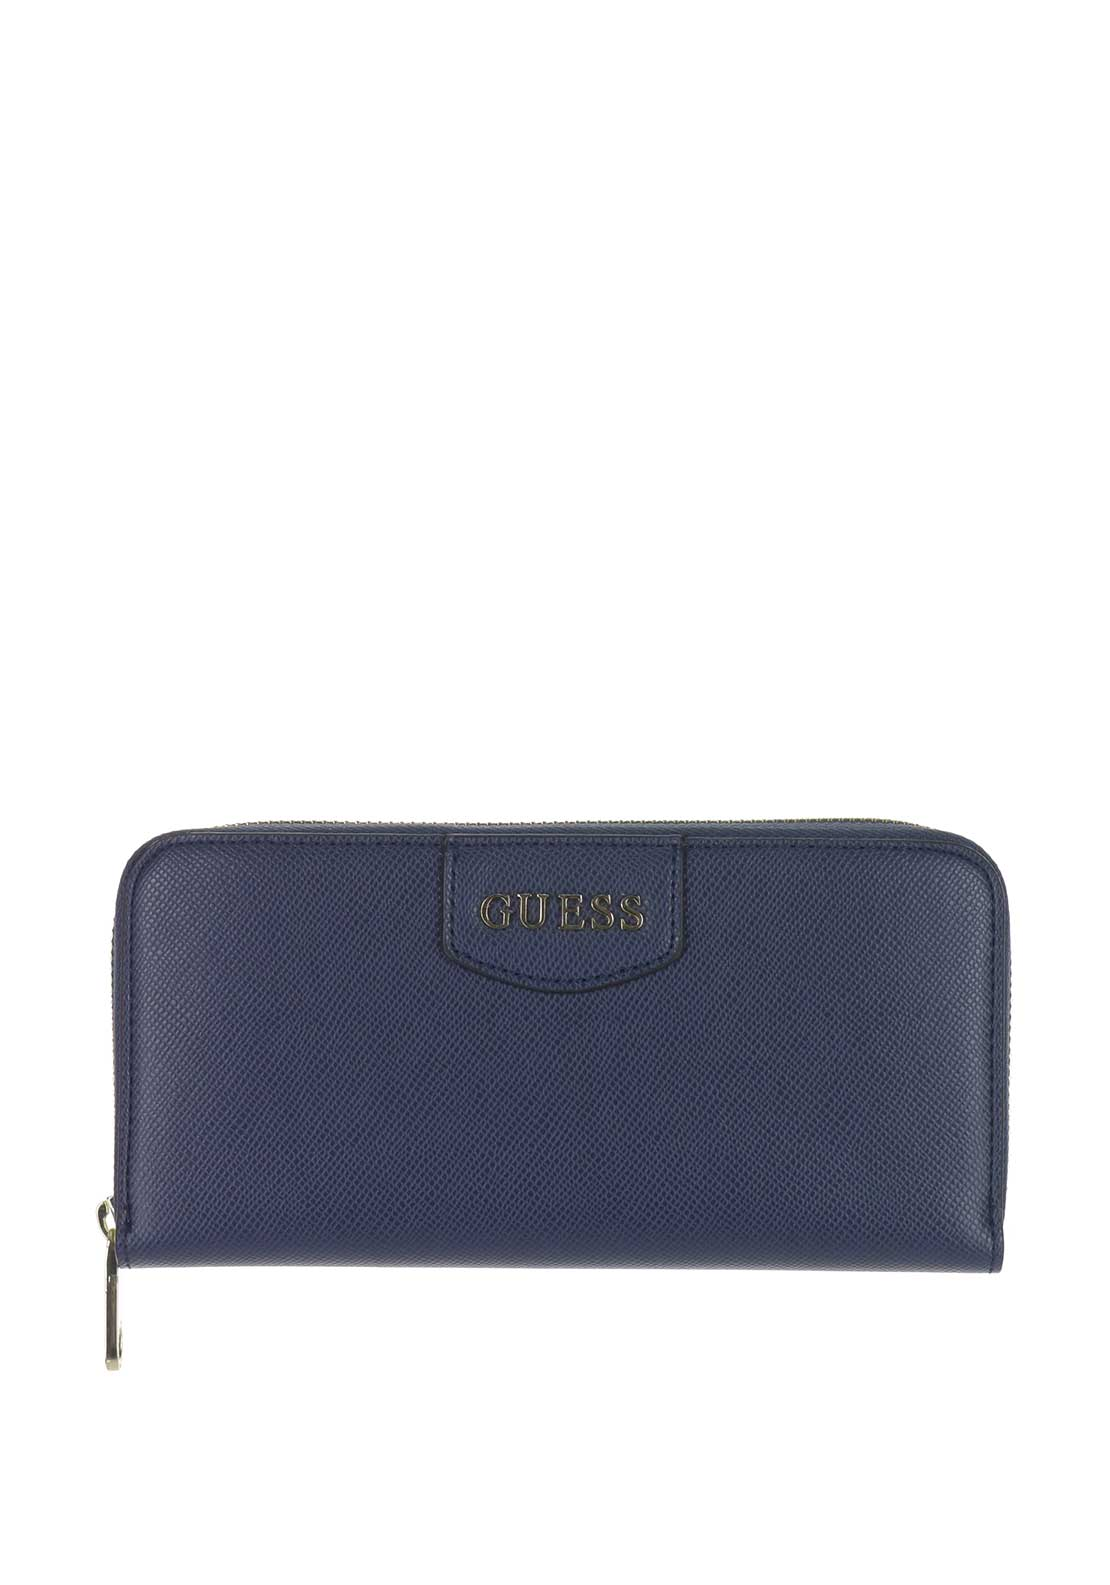 Guess Aria Zip Around Wallet, Navy